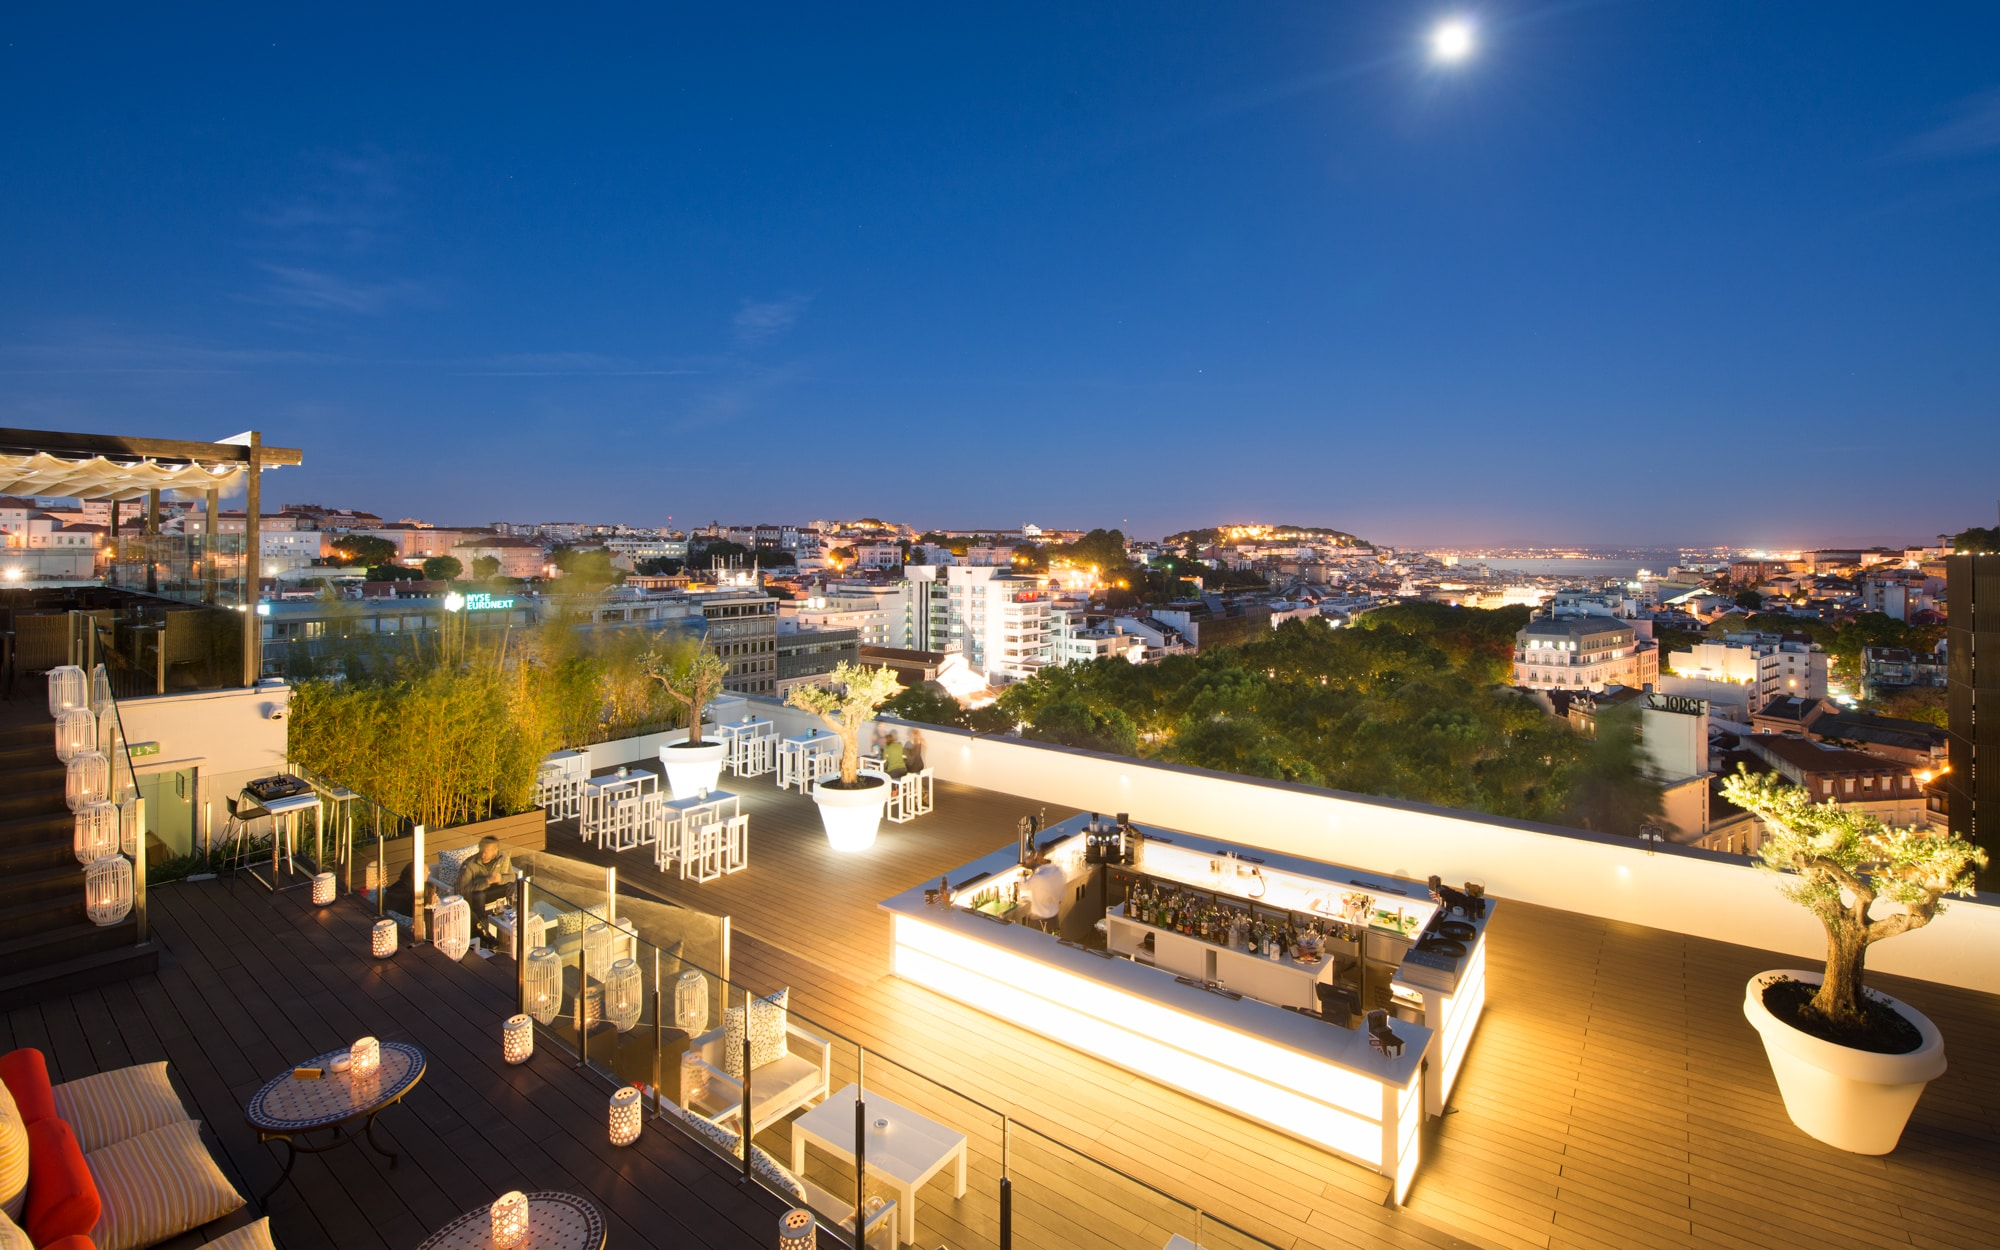 Tivoli Hotels In The Algarve Tivoli Lisboa Hotel Review Lisbon Travel